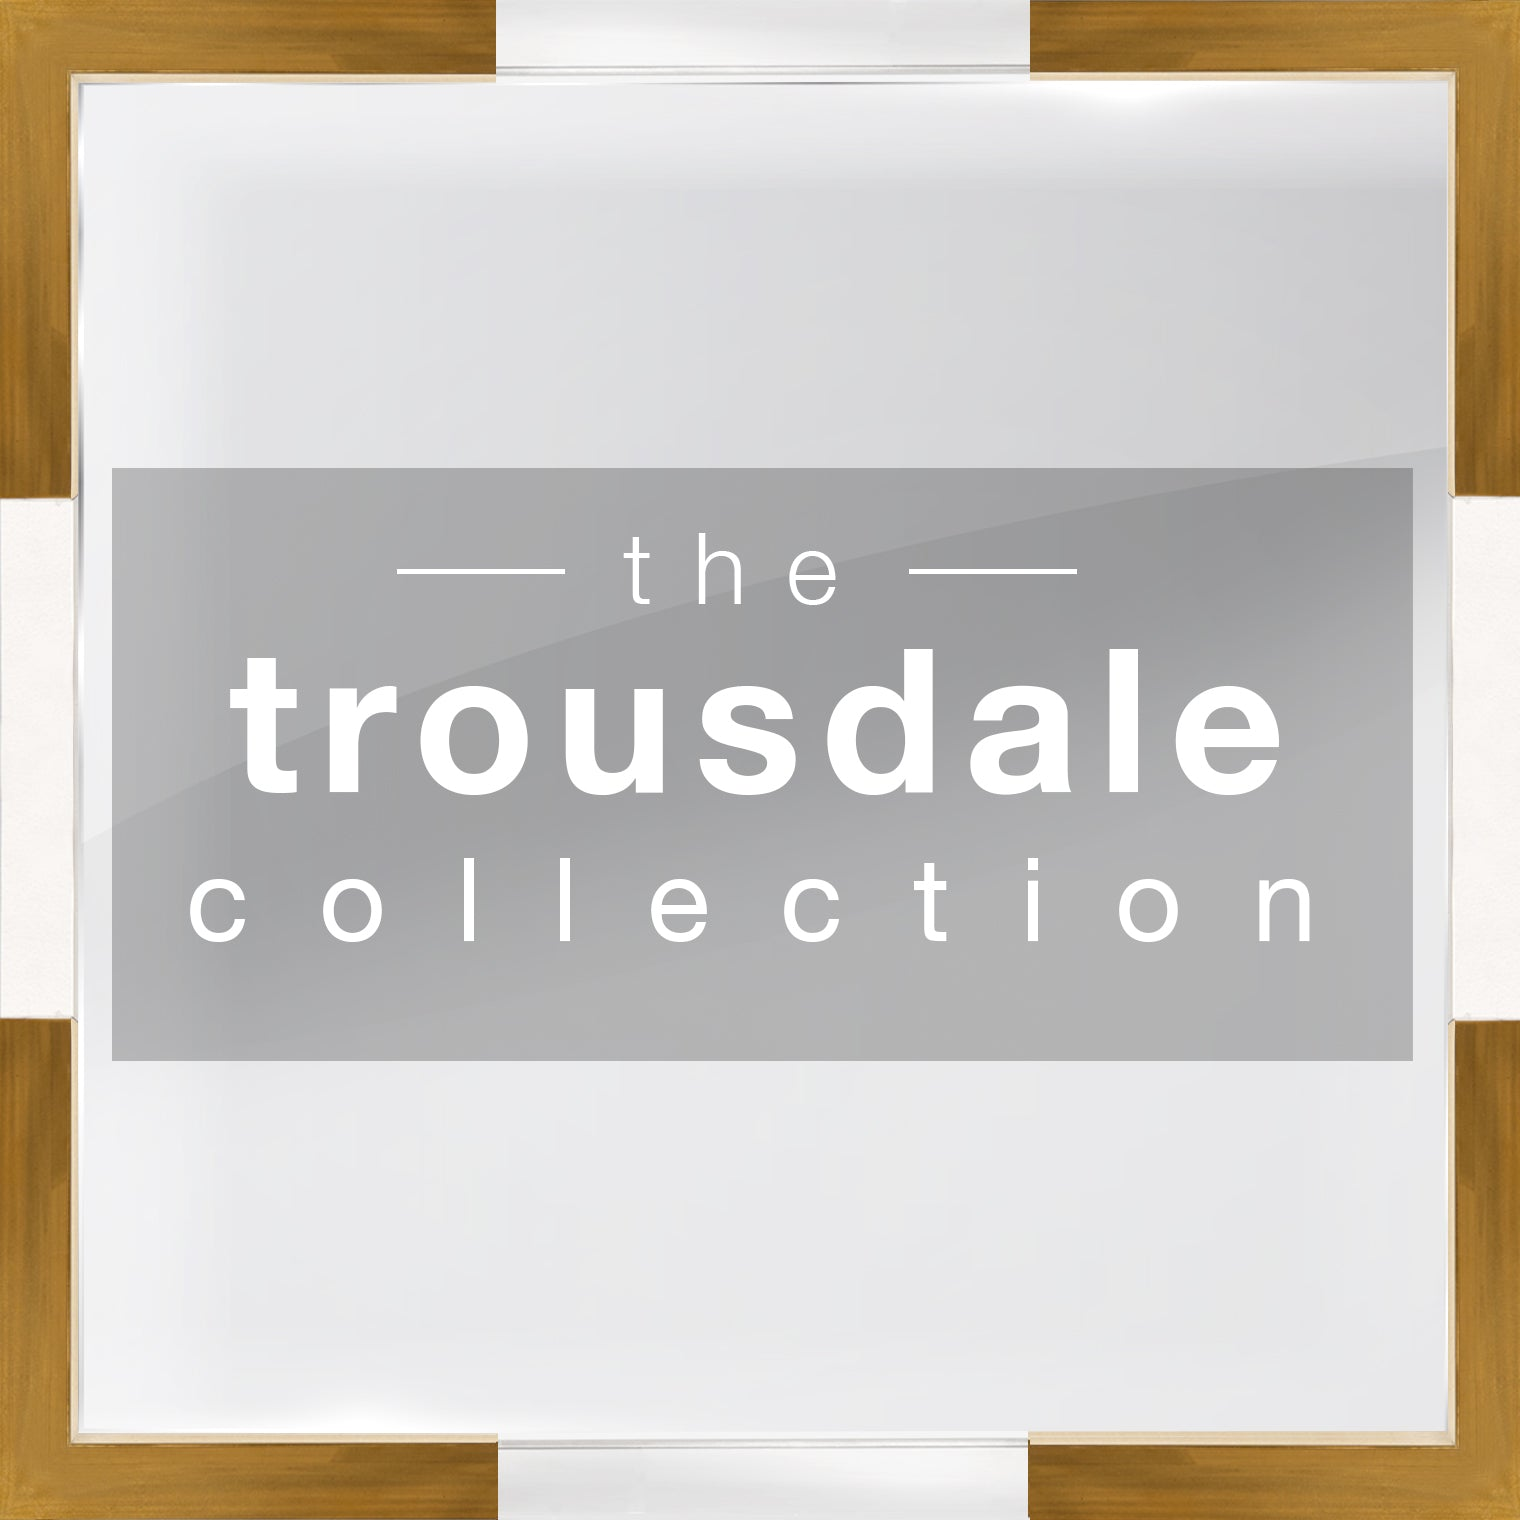 Gray background, gold-brown and white block border, white-lettered 'the Trousdale Collection' inside center shaded rectangle